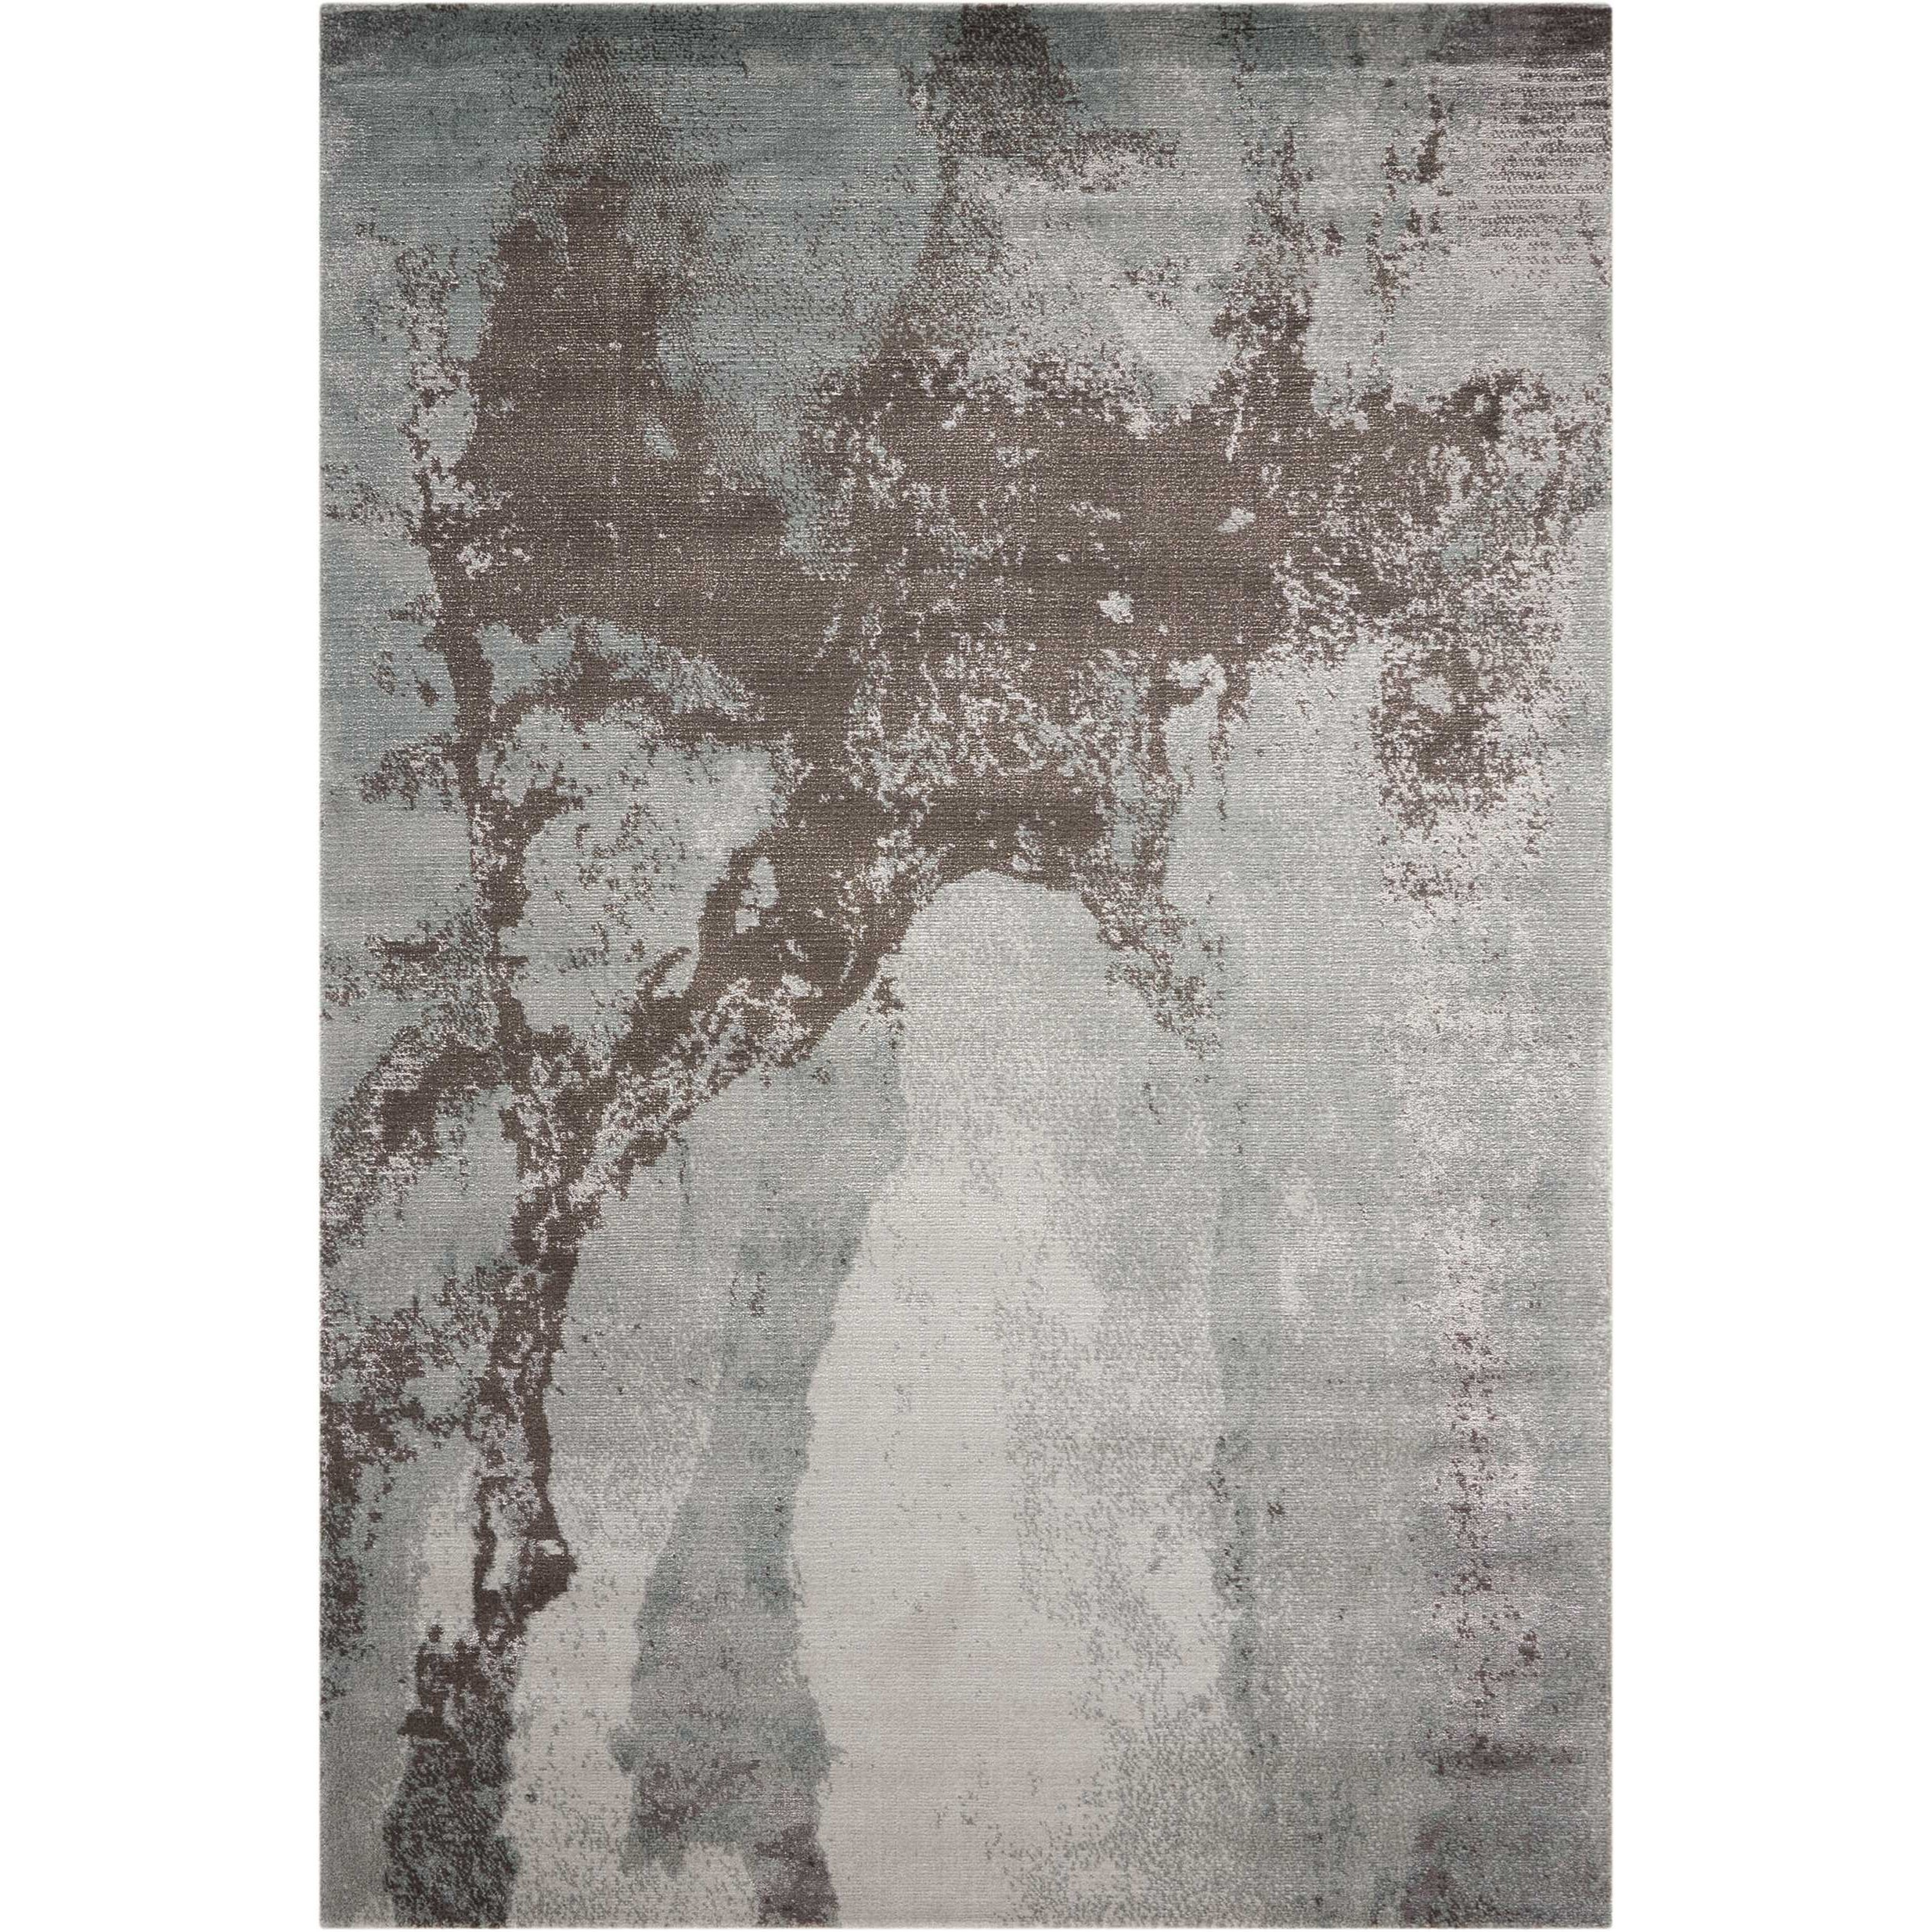 Twilight 6'x8' Area Rug by Nourison at Home Collections Furniture